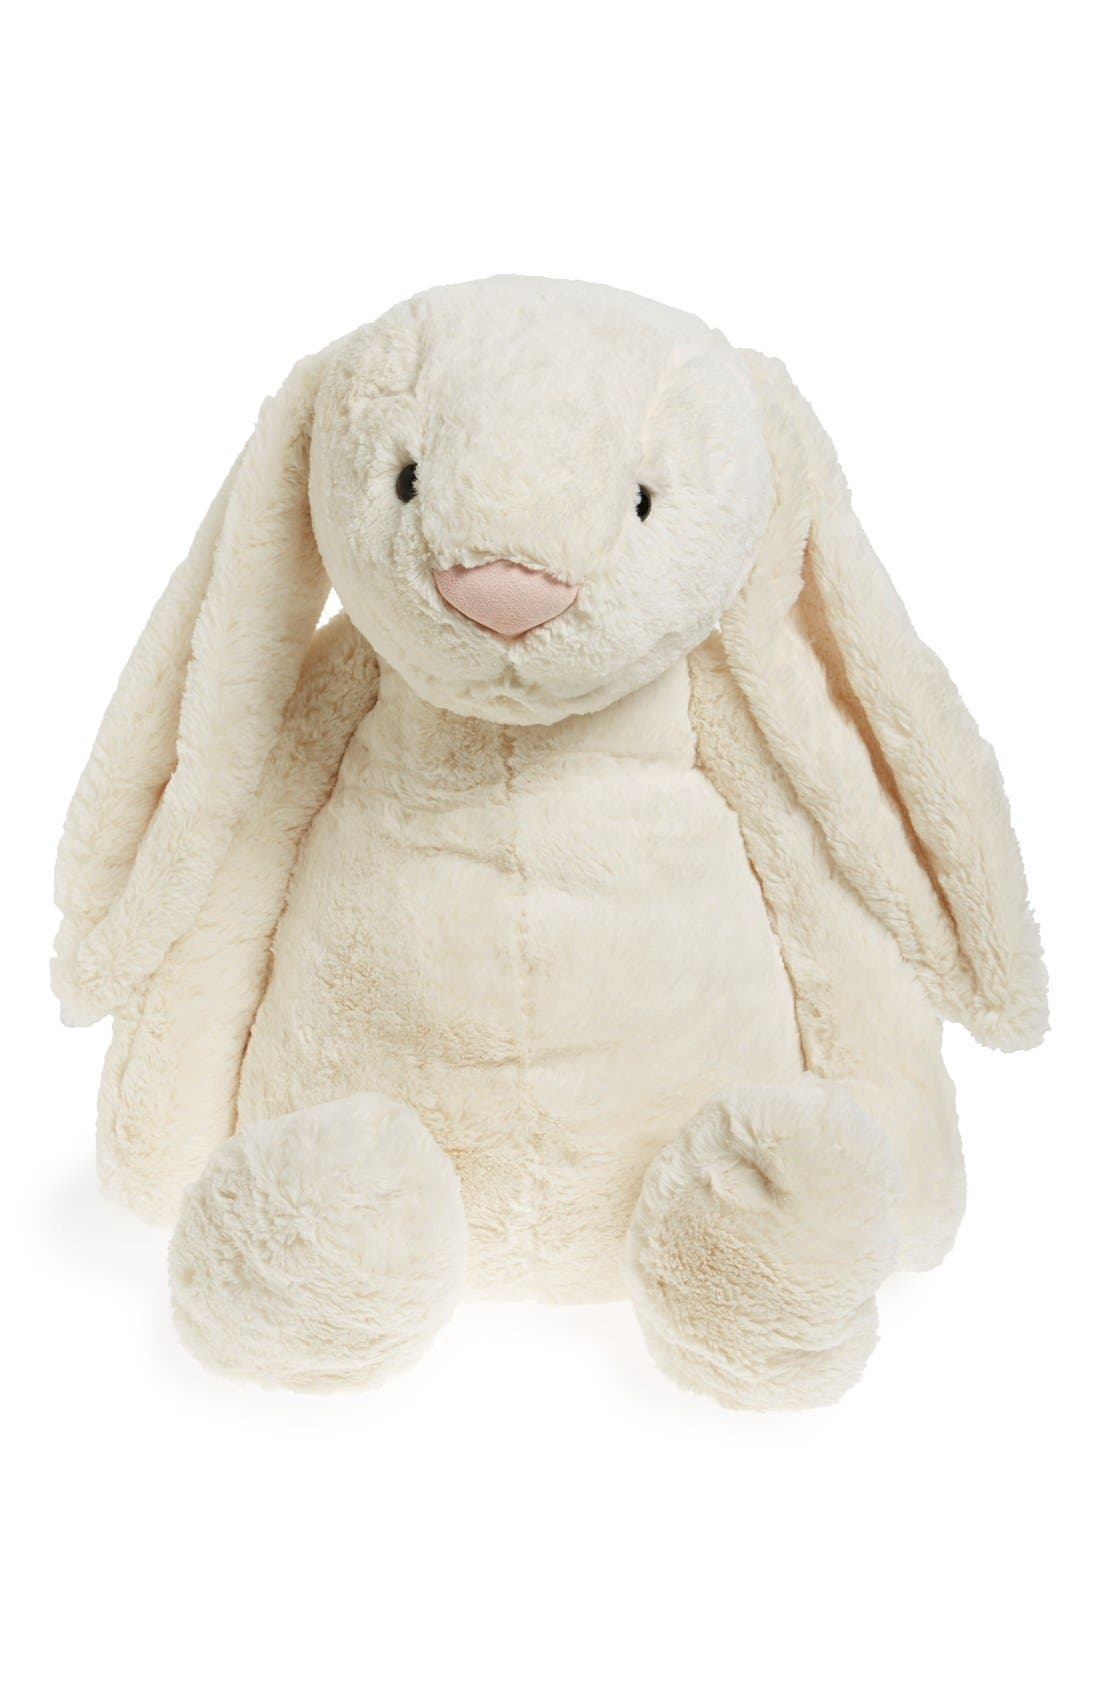 Jellycat 'Really Big Bashful Bunny' Stuffed Animal